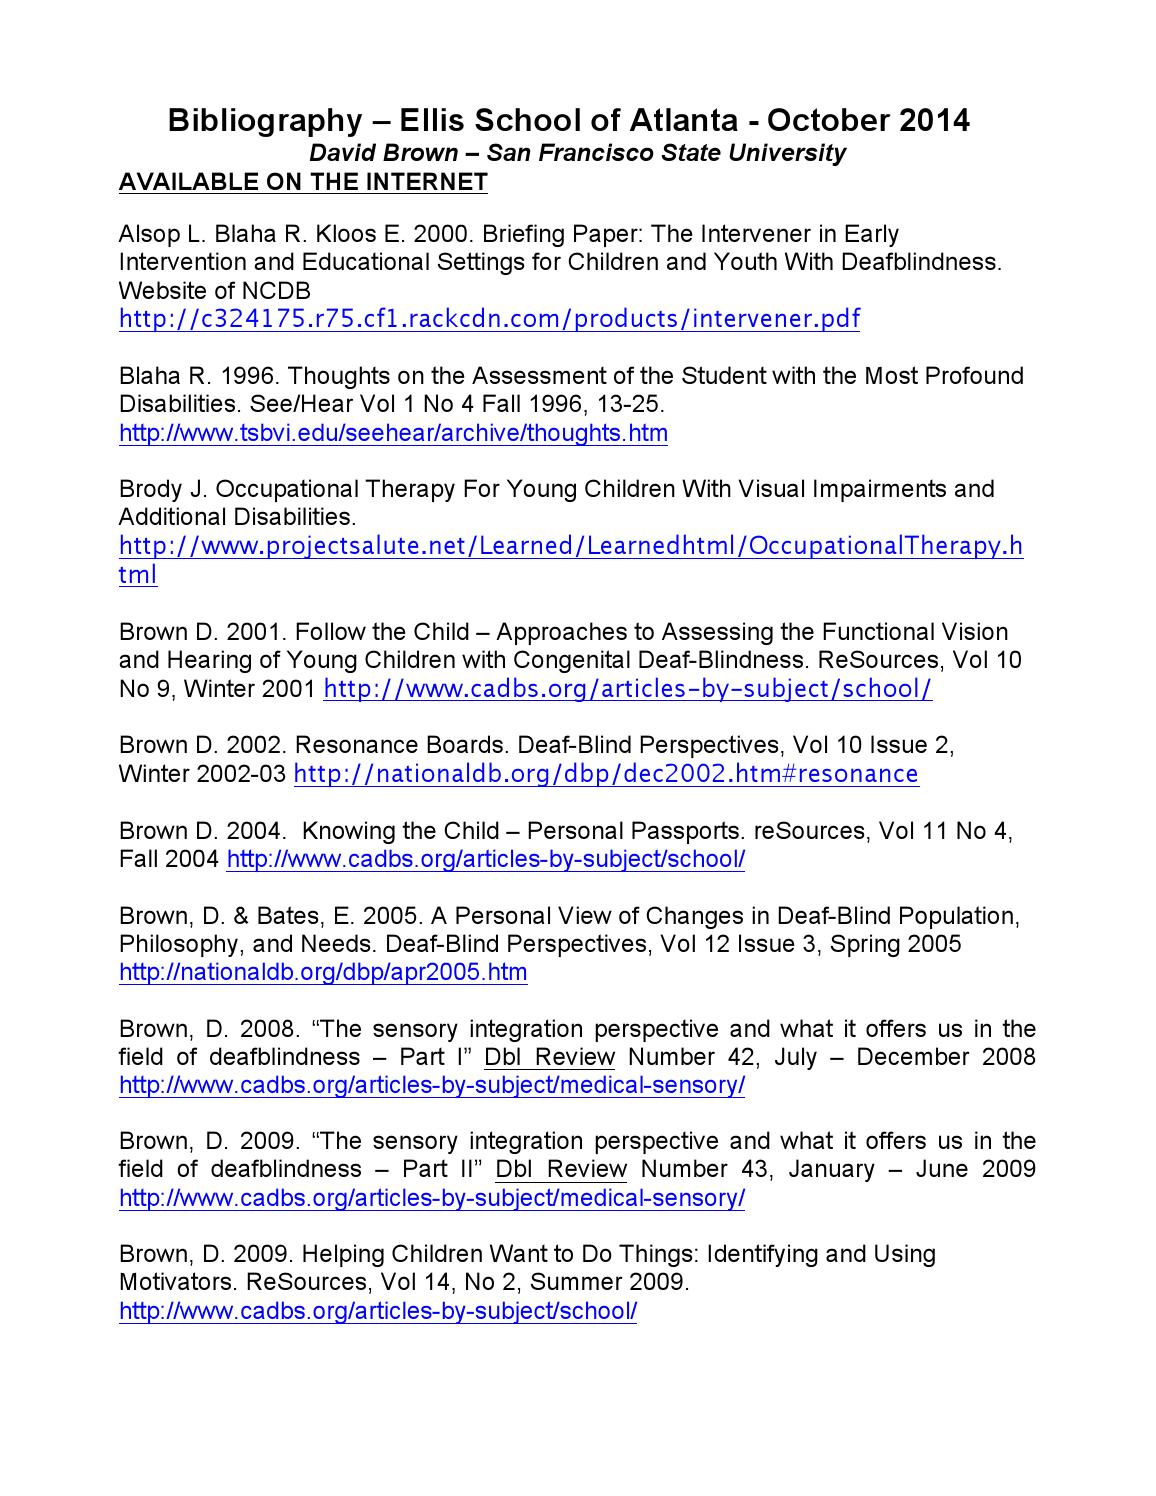 Bibliography by anomalee - issuu